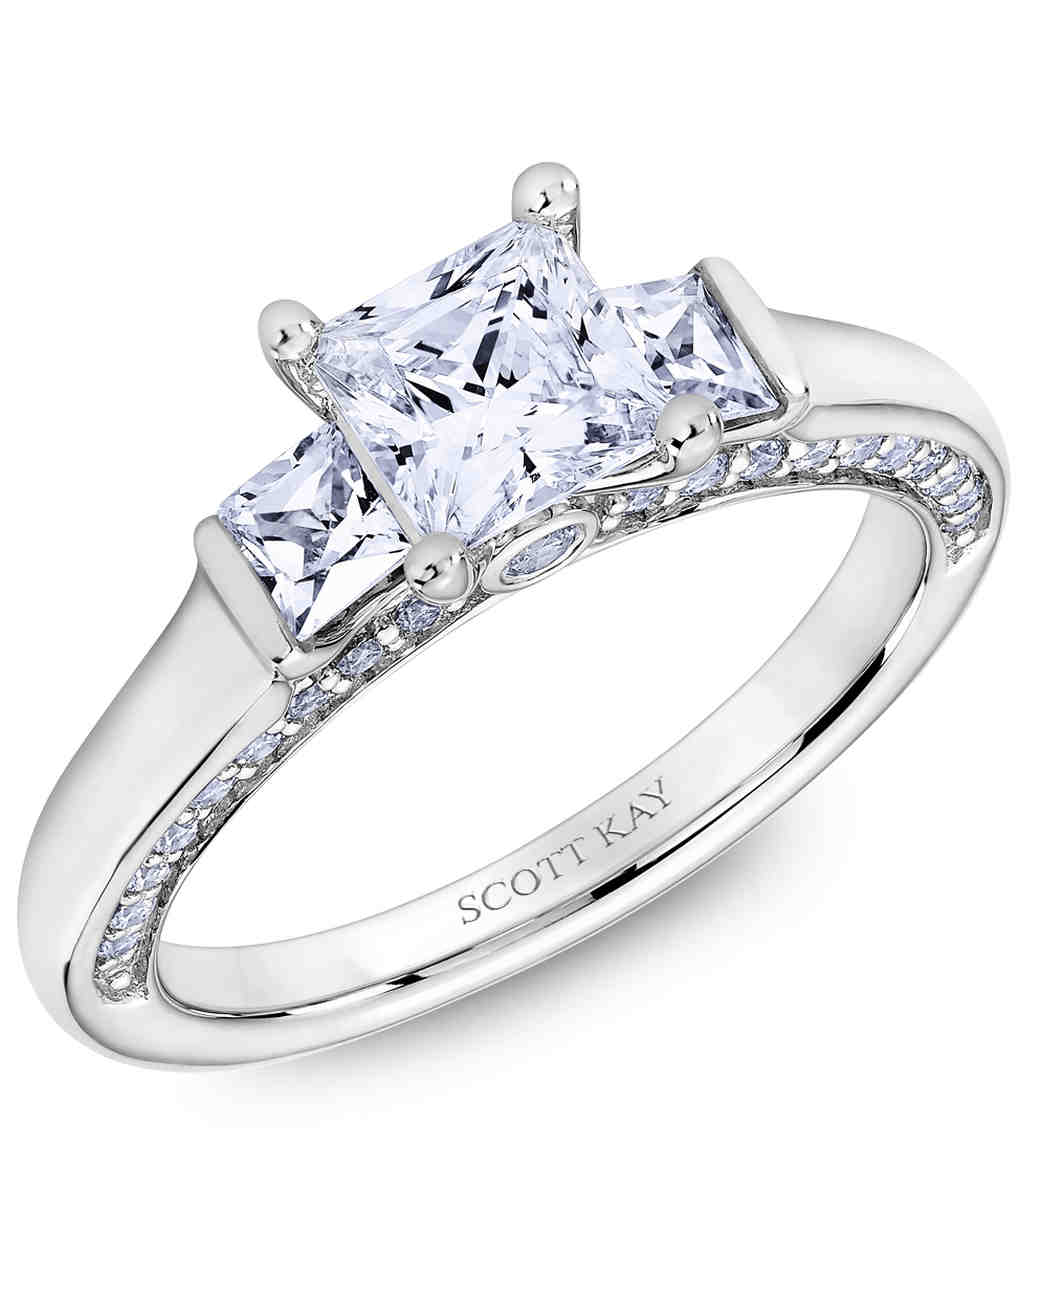 Princess-Cut Diamond Engagement Rings